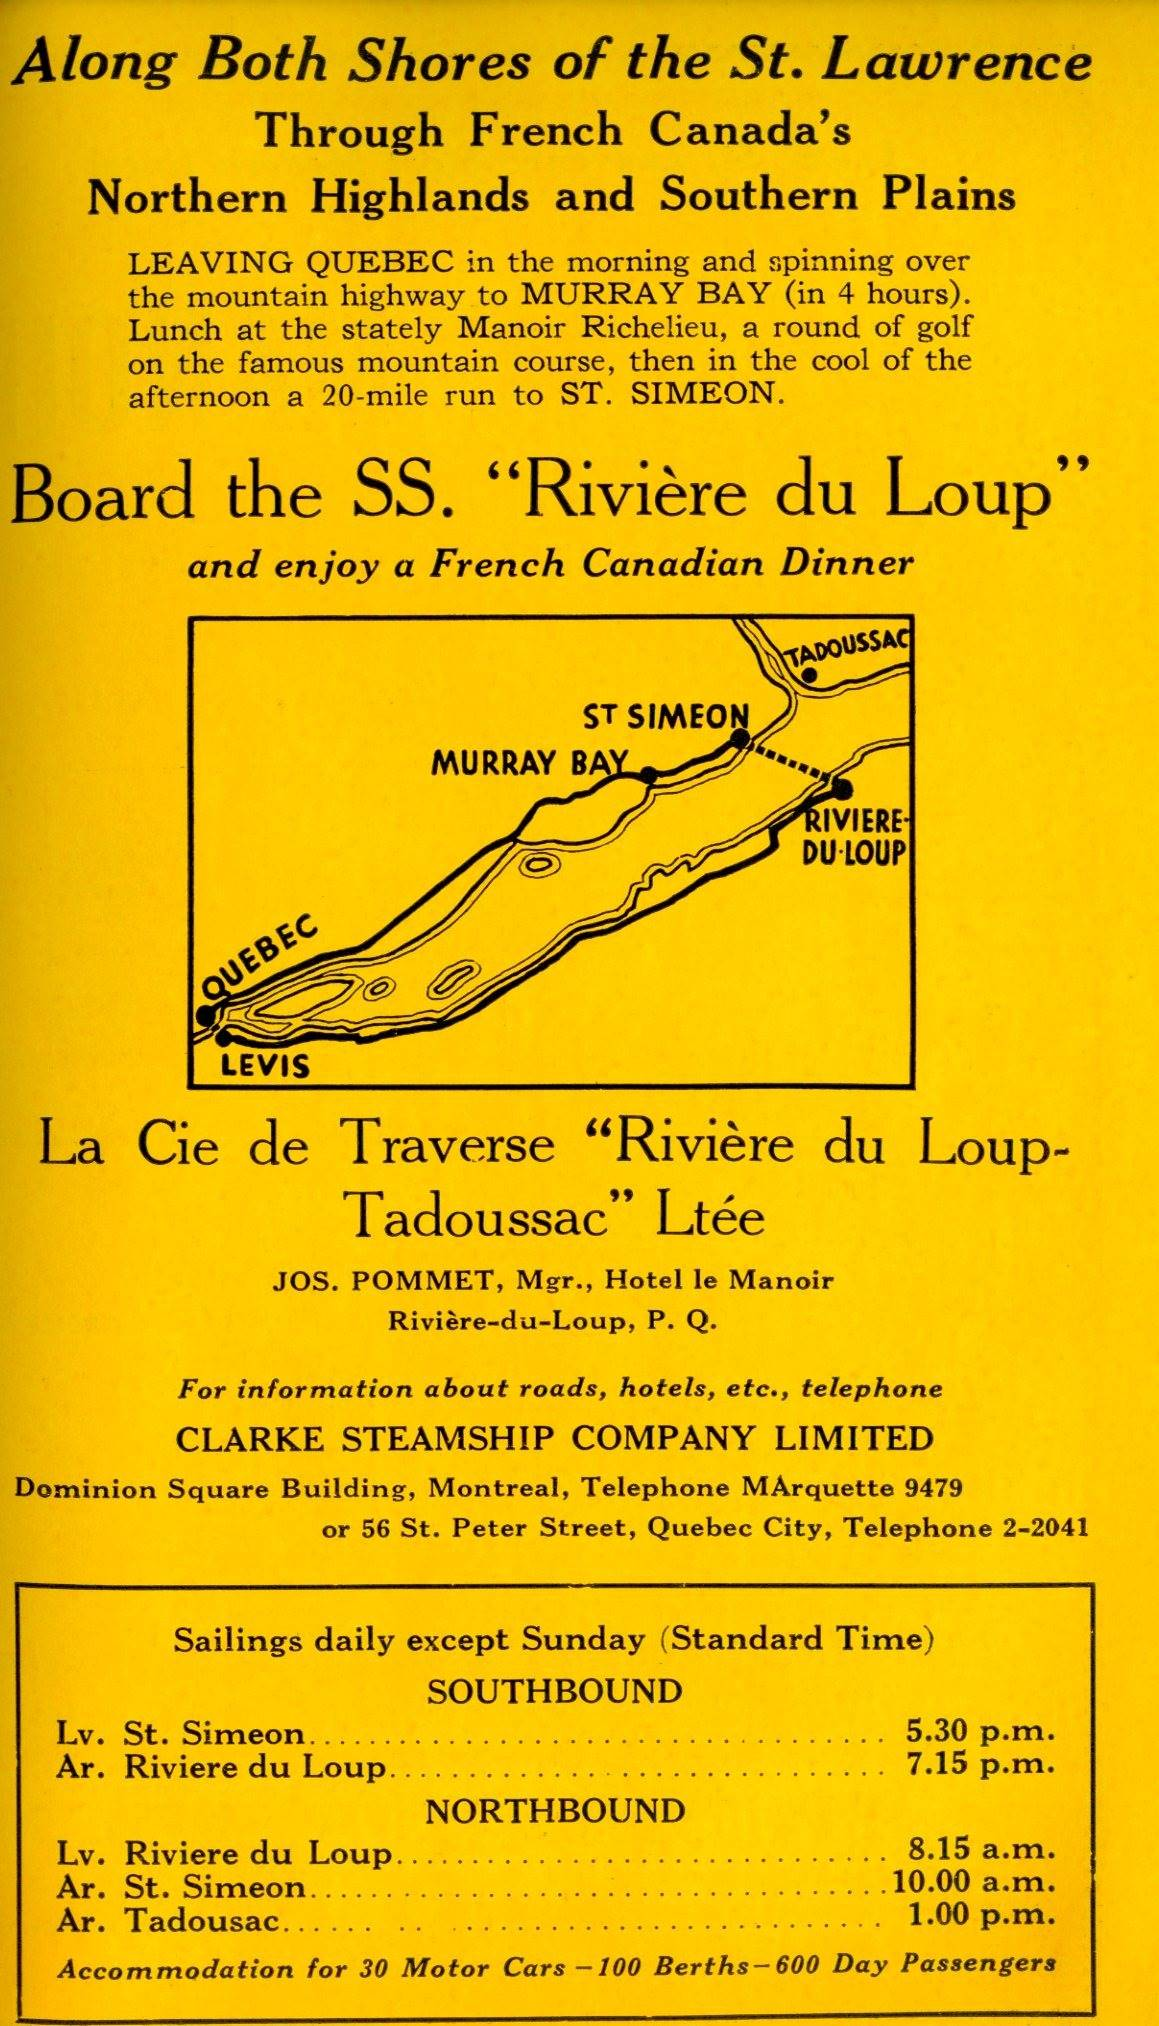 English-language ad for a ferry service. A map suggests a route around eastern Quebec.